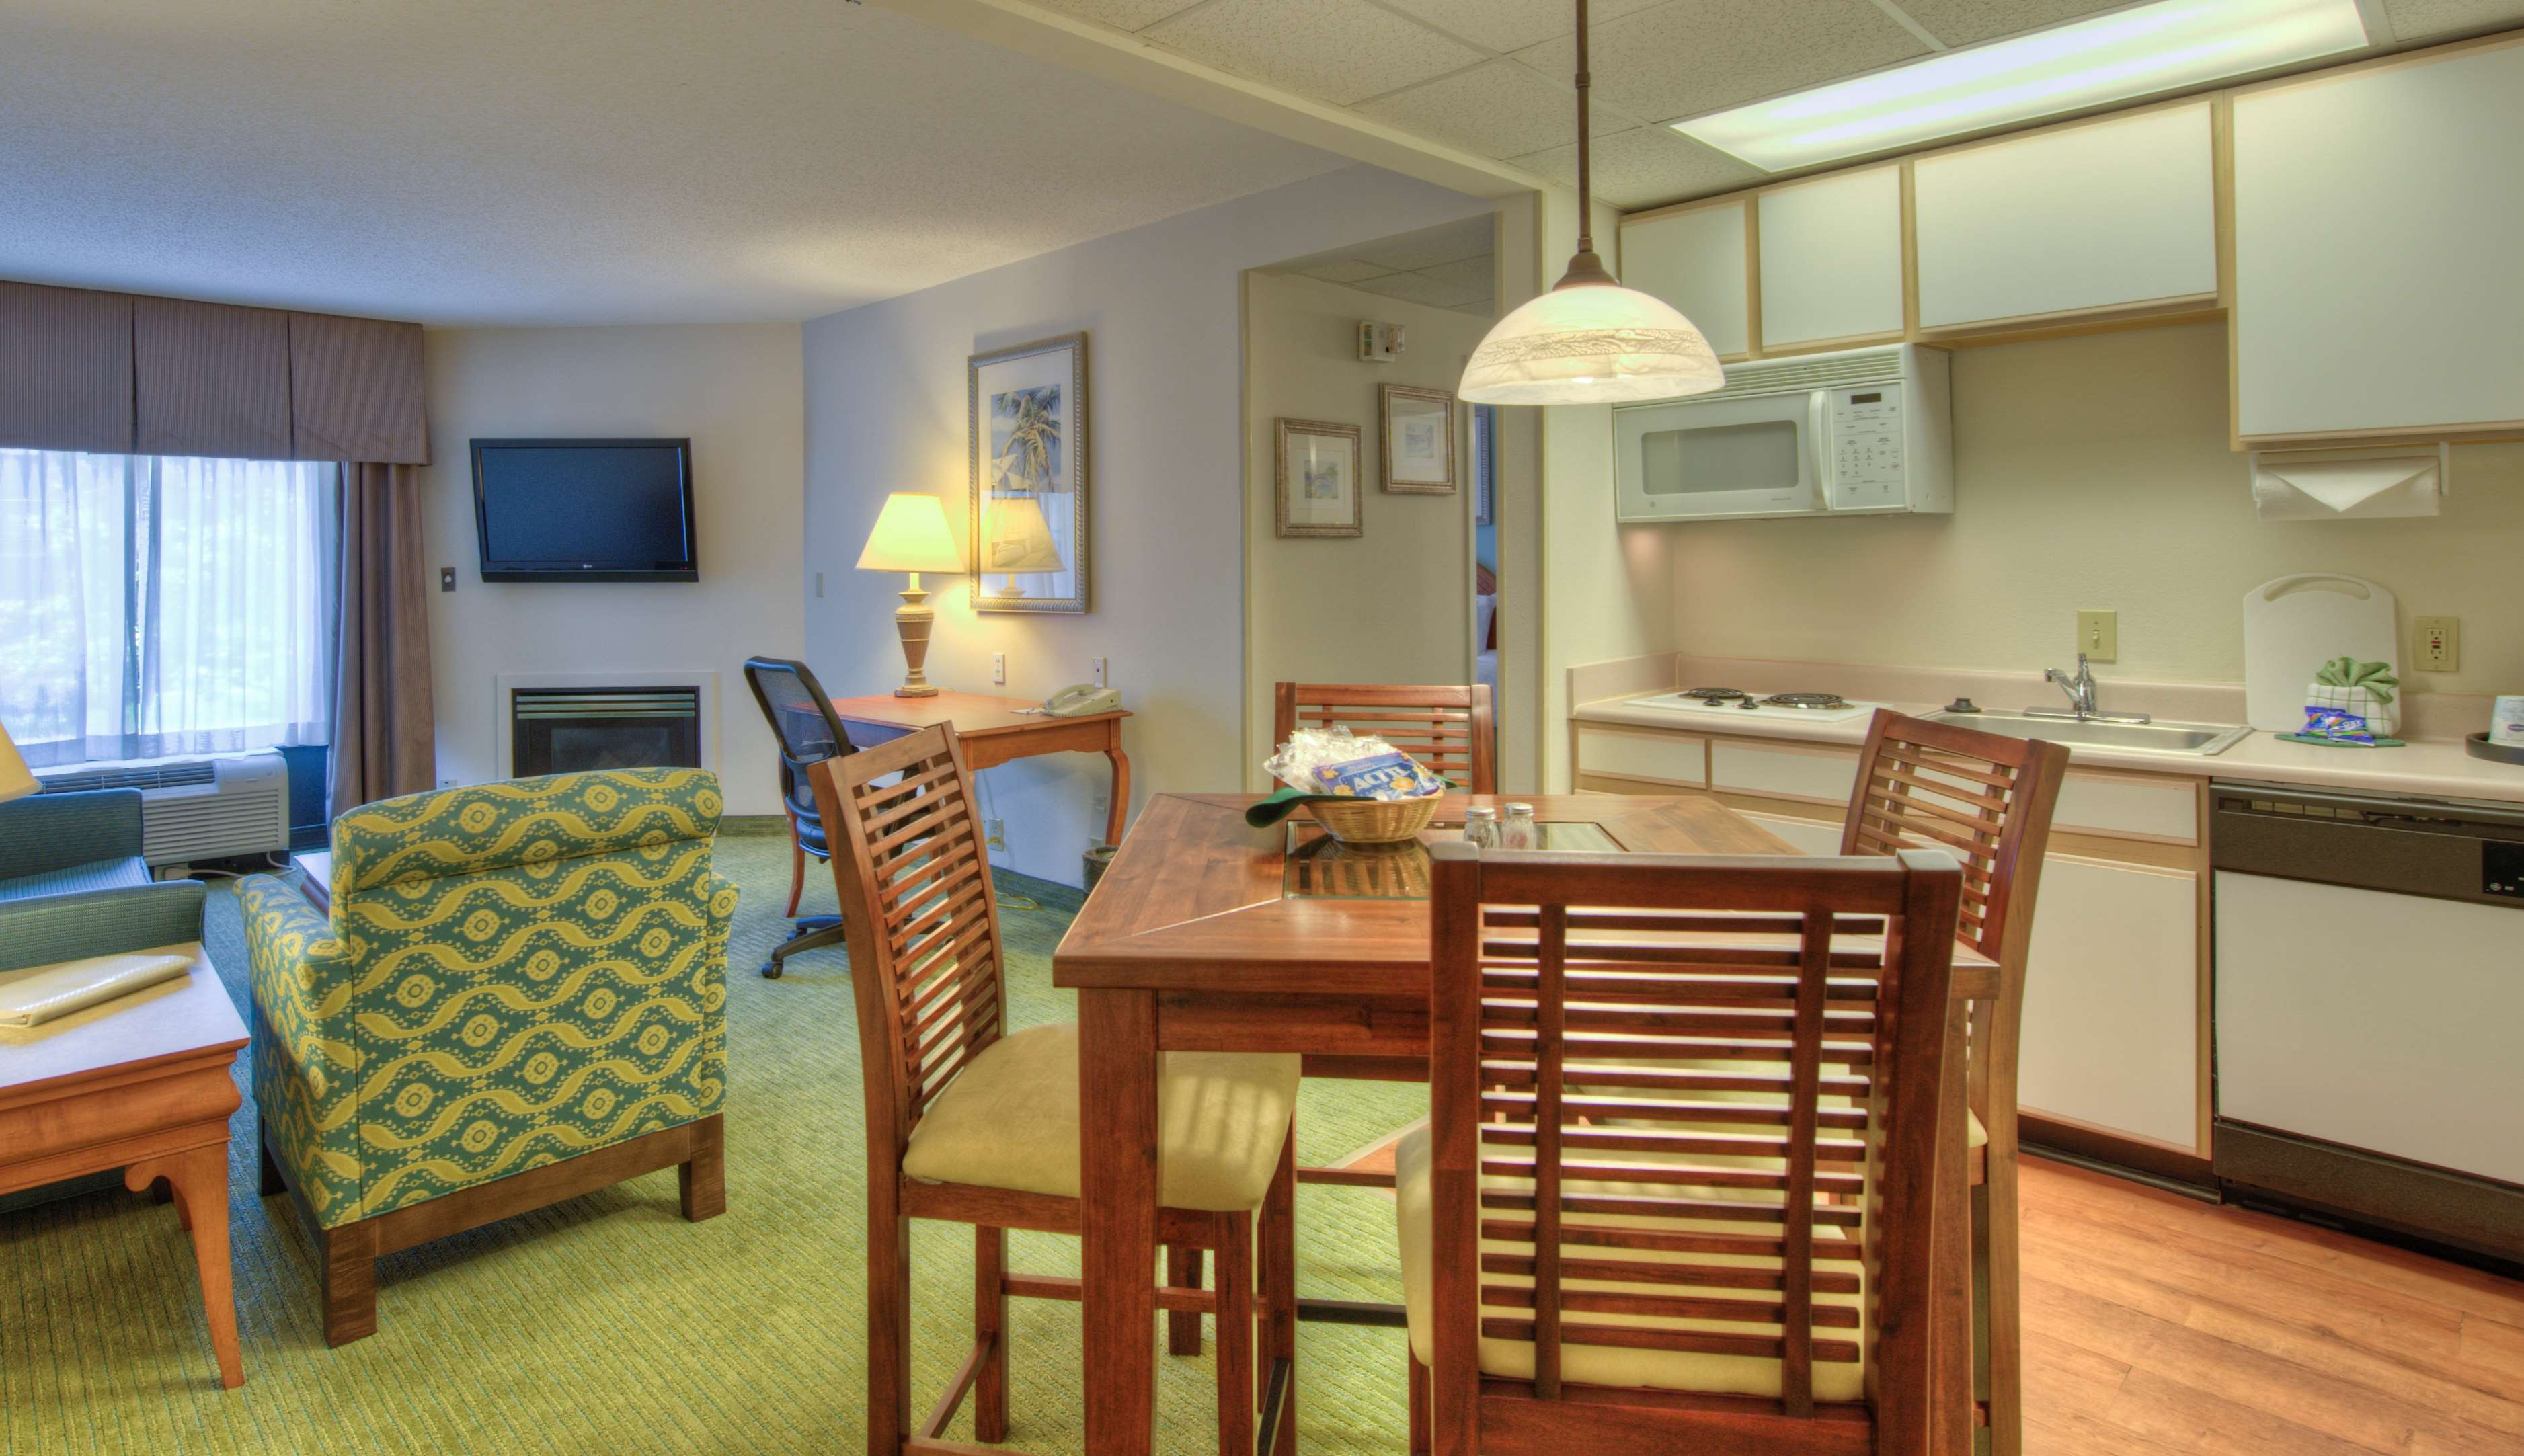 Hampton Inn & Suites Wilmington/Wrightsville Beach image 22